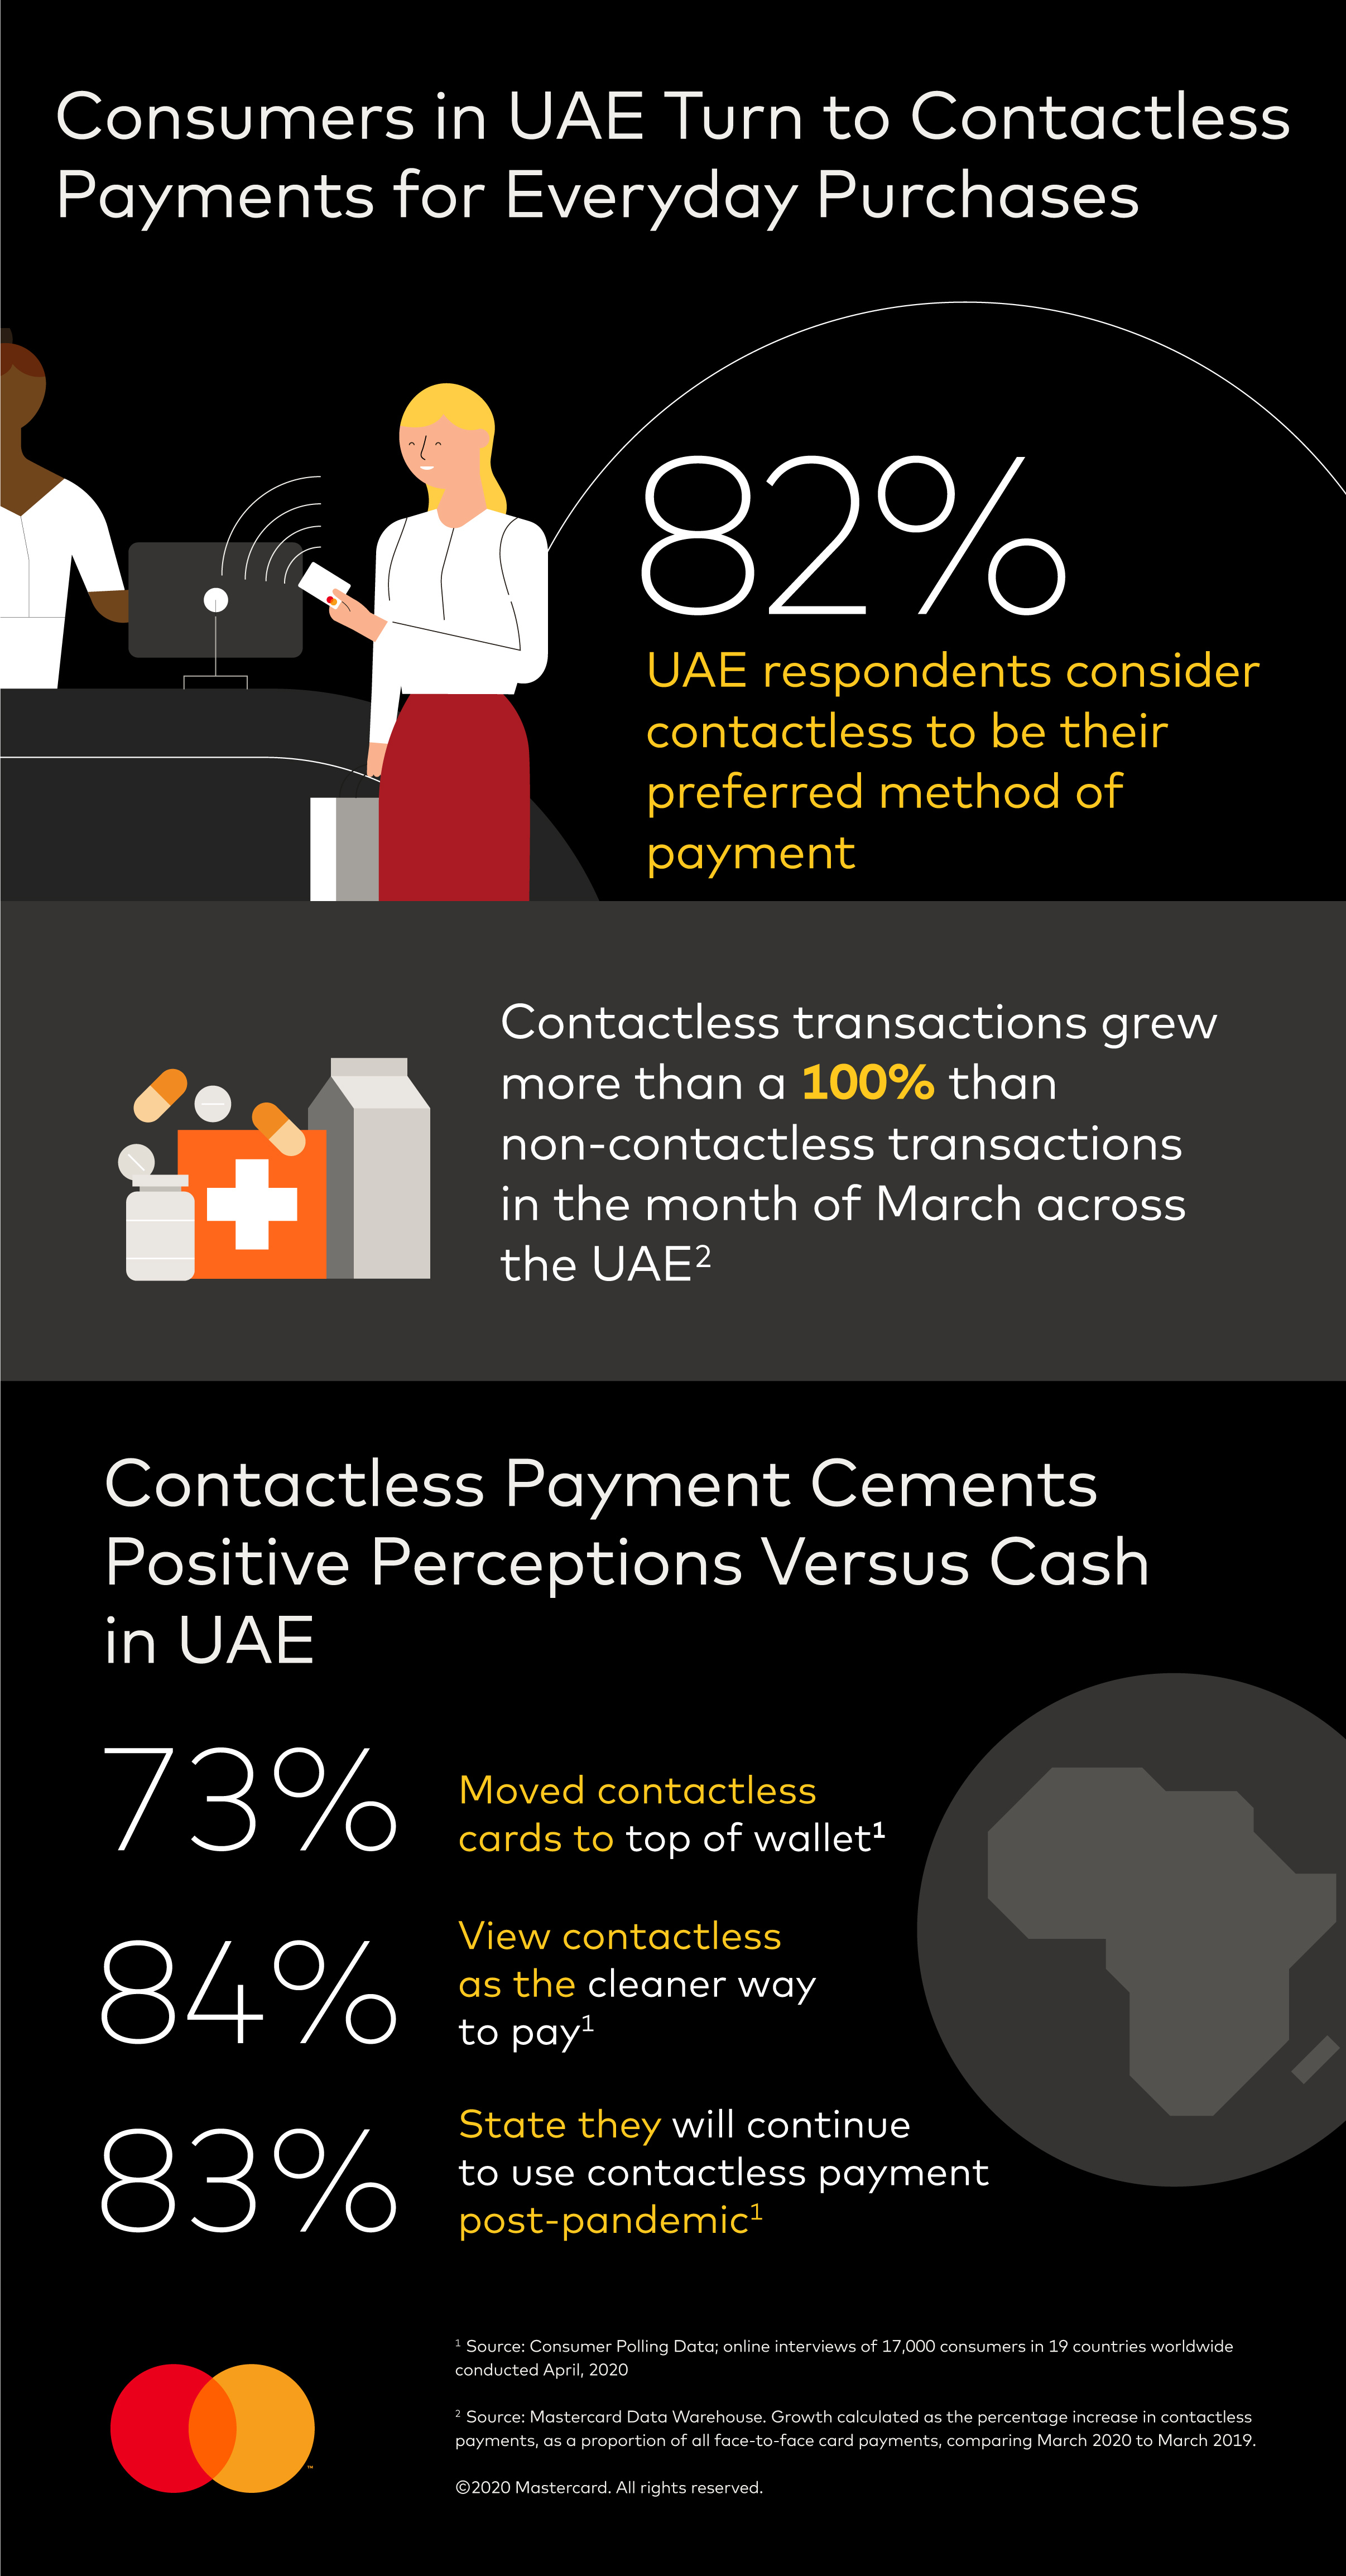 Contactless Payments - UAE